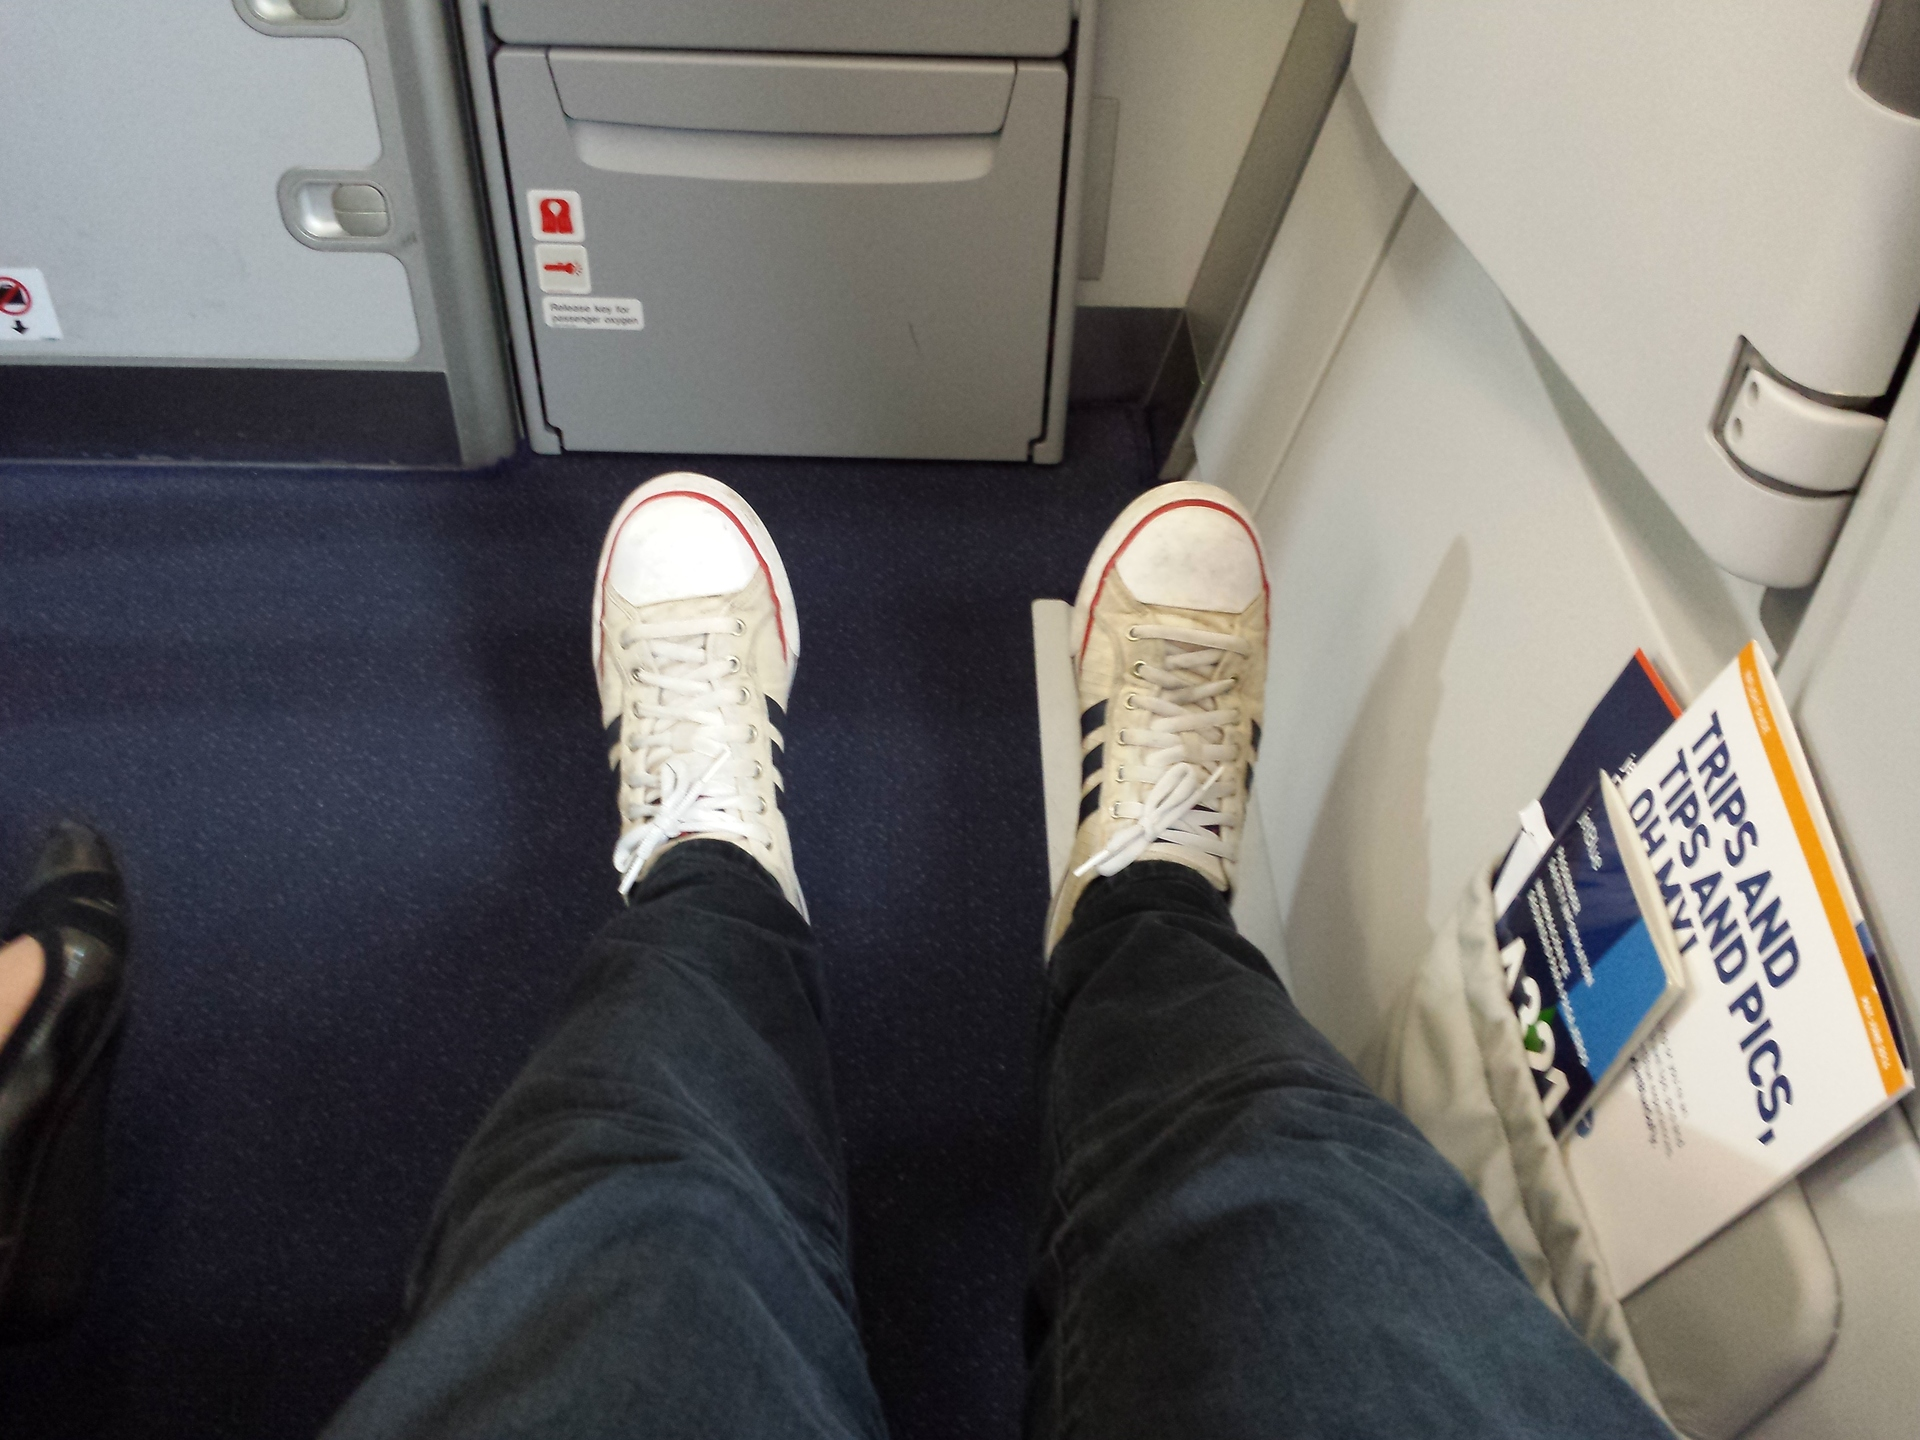 Gallery Jetblue A321 Even More Space Seat 6f Transcon